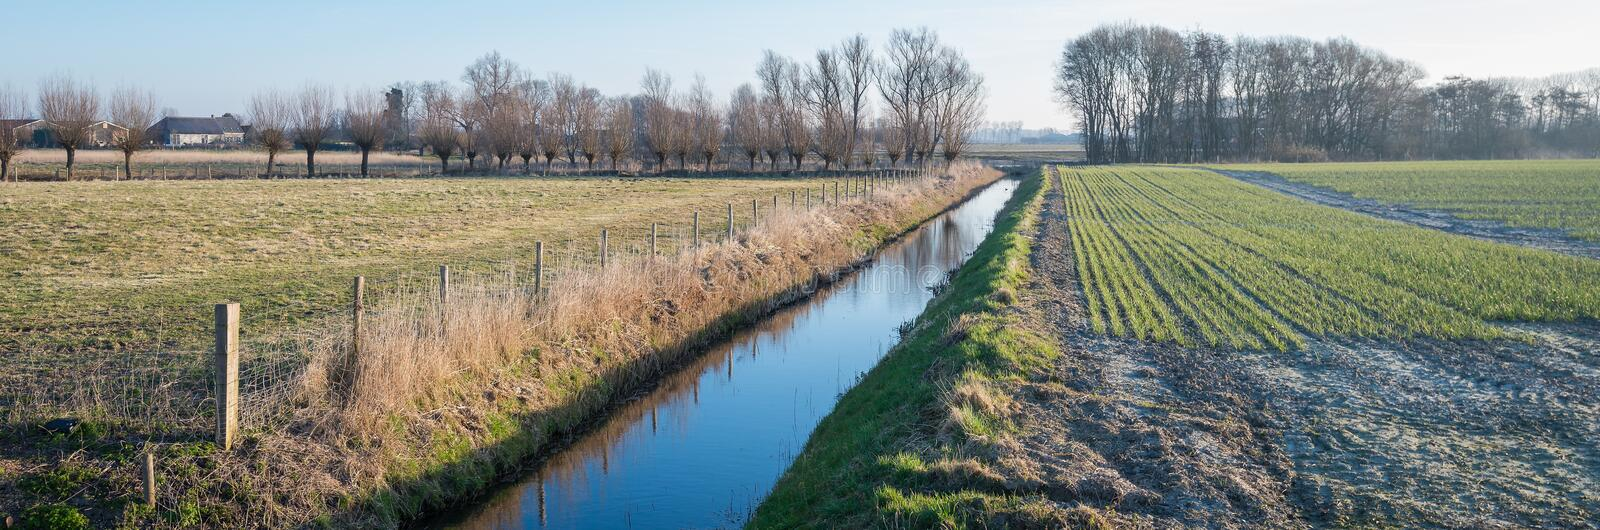 Panoramic picture of fields separated by a ditch stock image